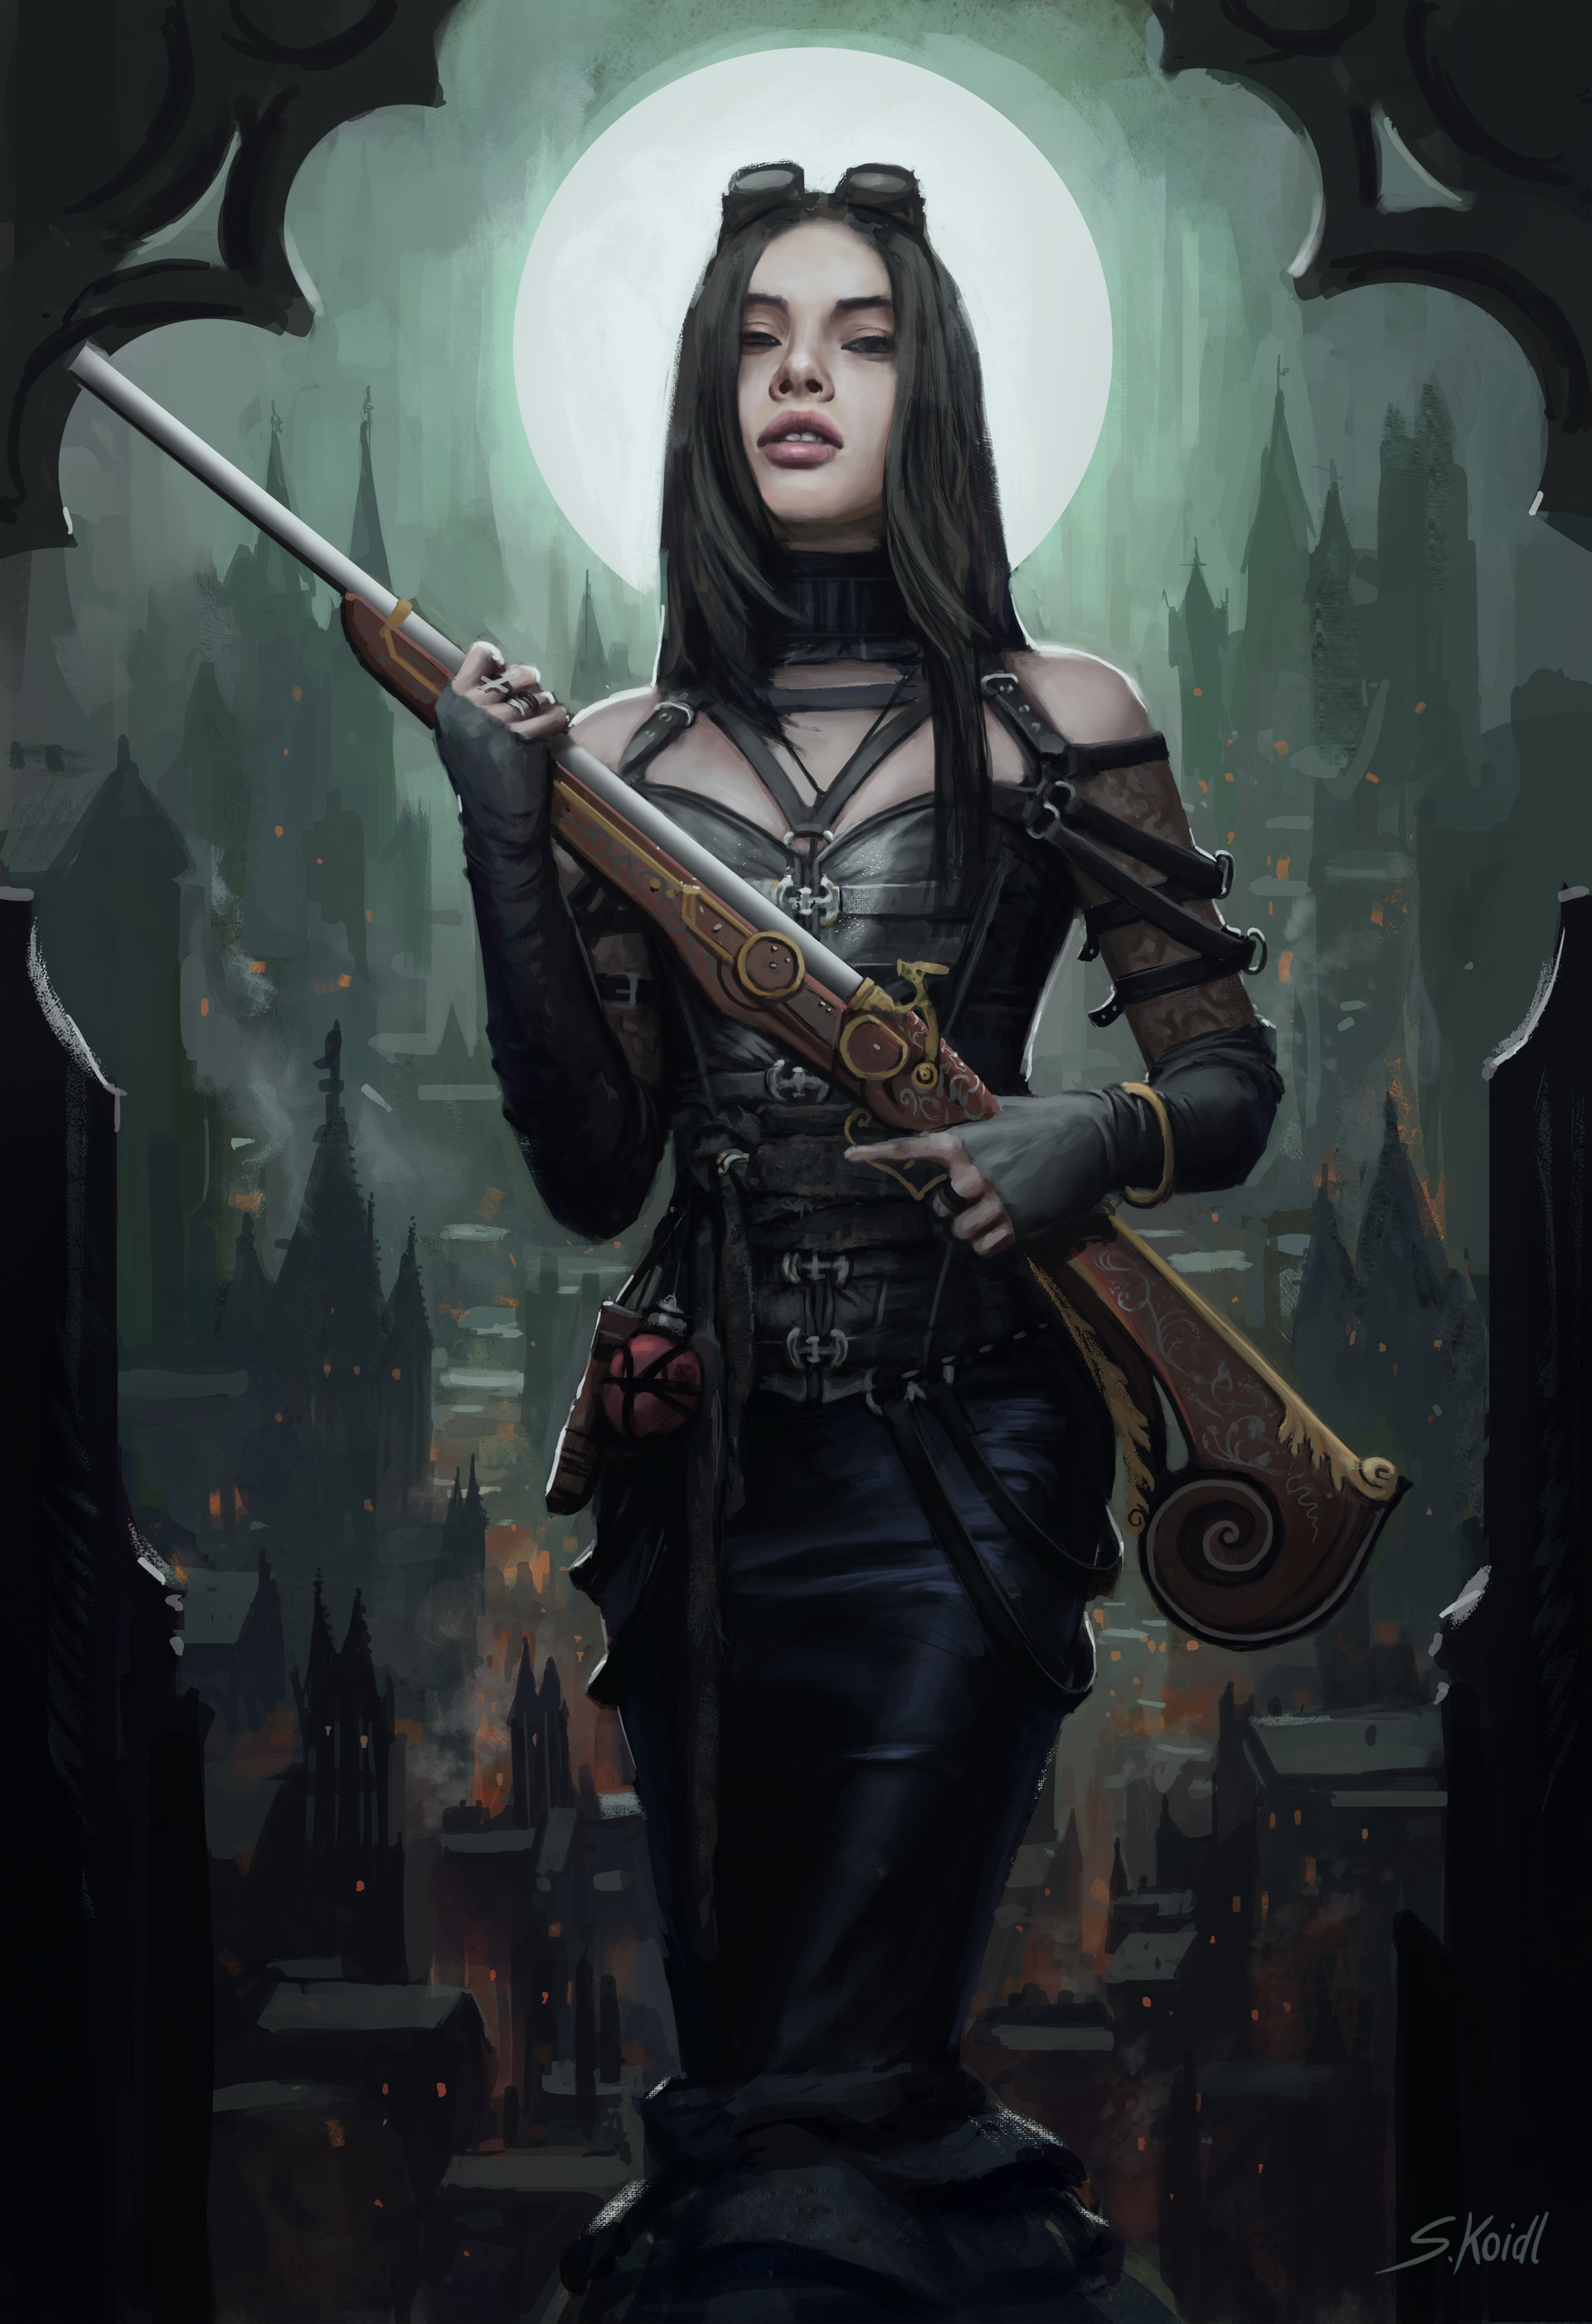 artstation steampunk huntress stefan koidl